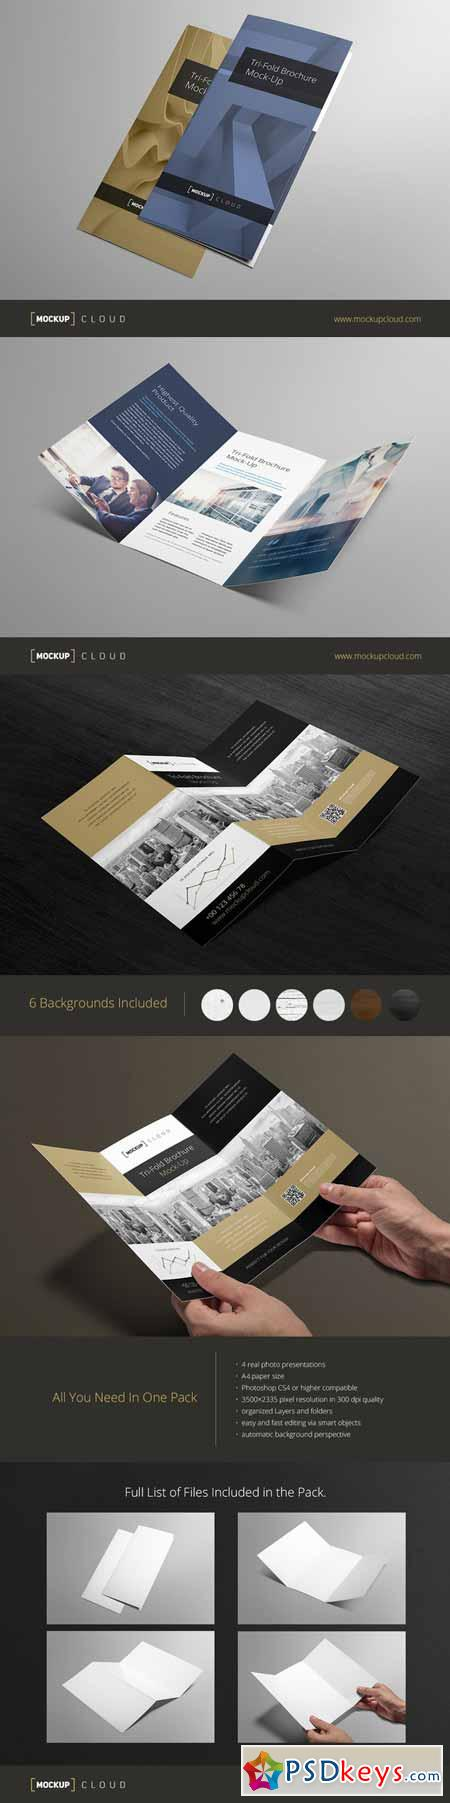 Tri-fold Brochure Mock-Up 164344